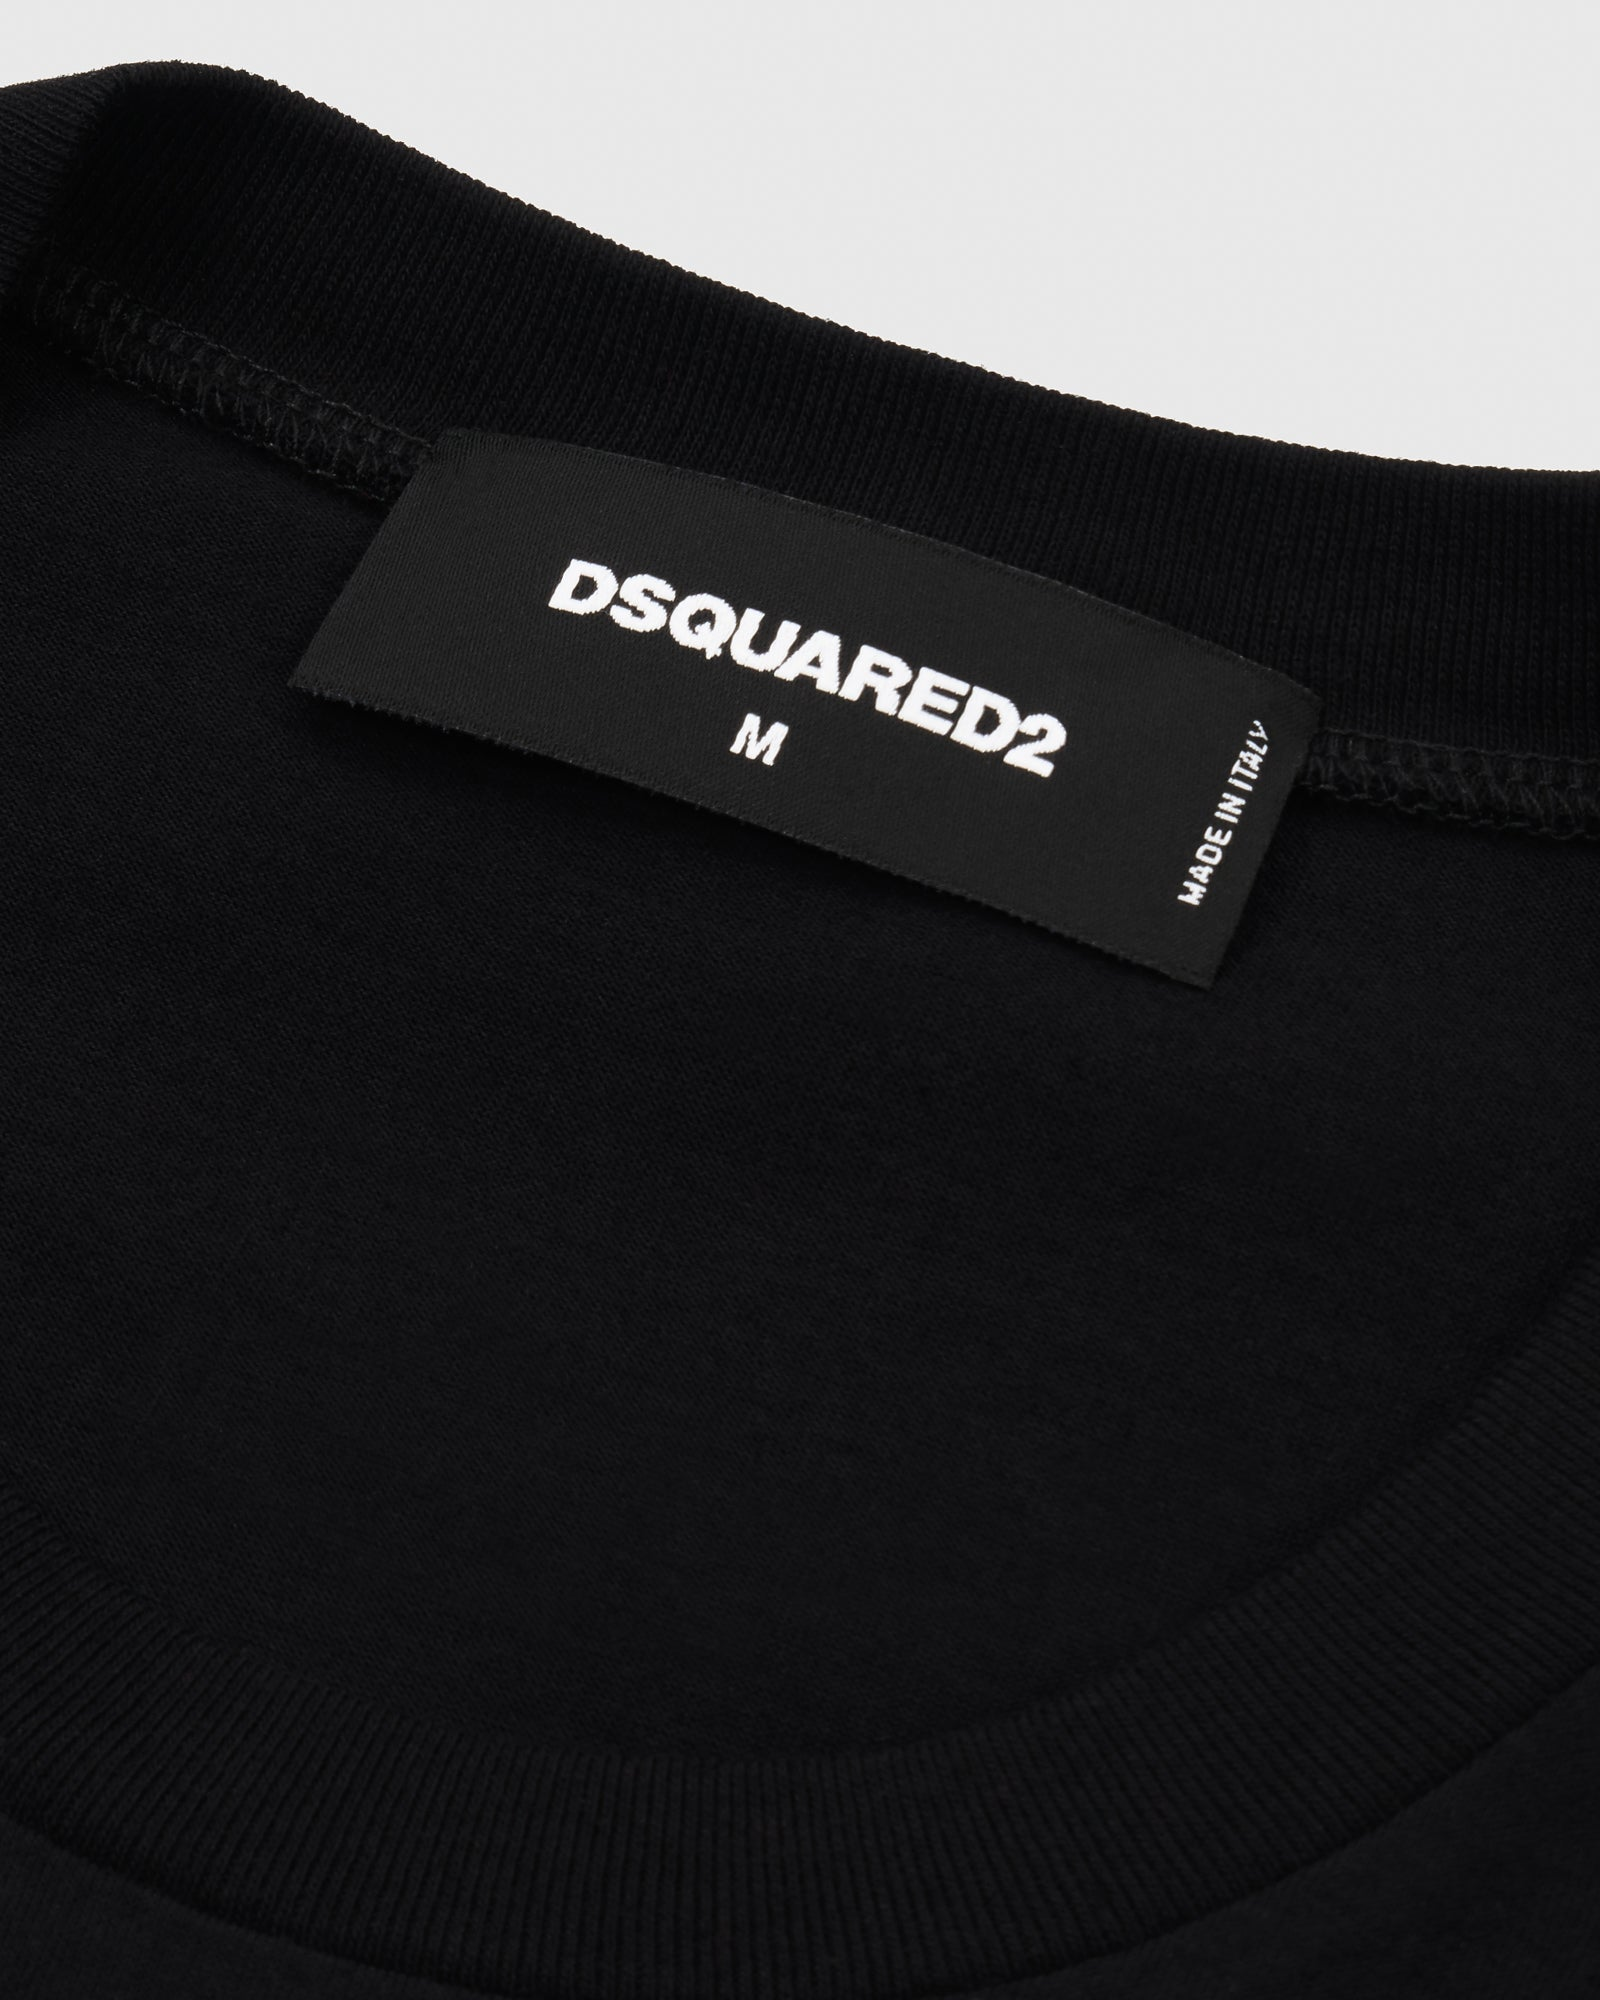 OVO x DSQUARED2 T-SHIRT - BLACK IMAGE #4